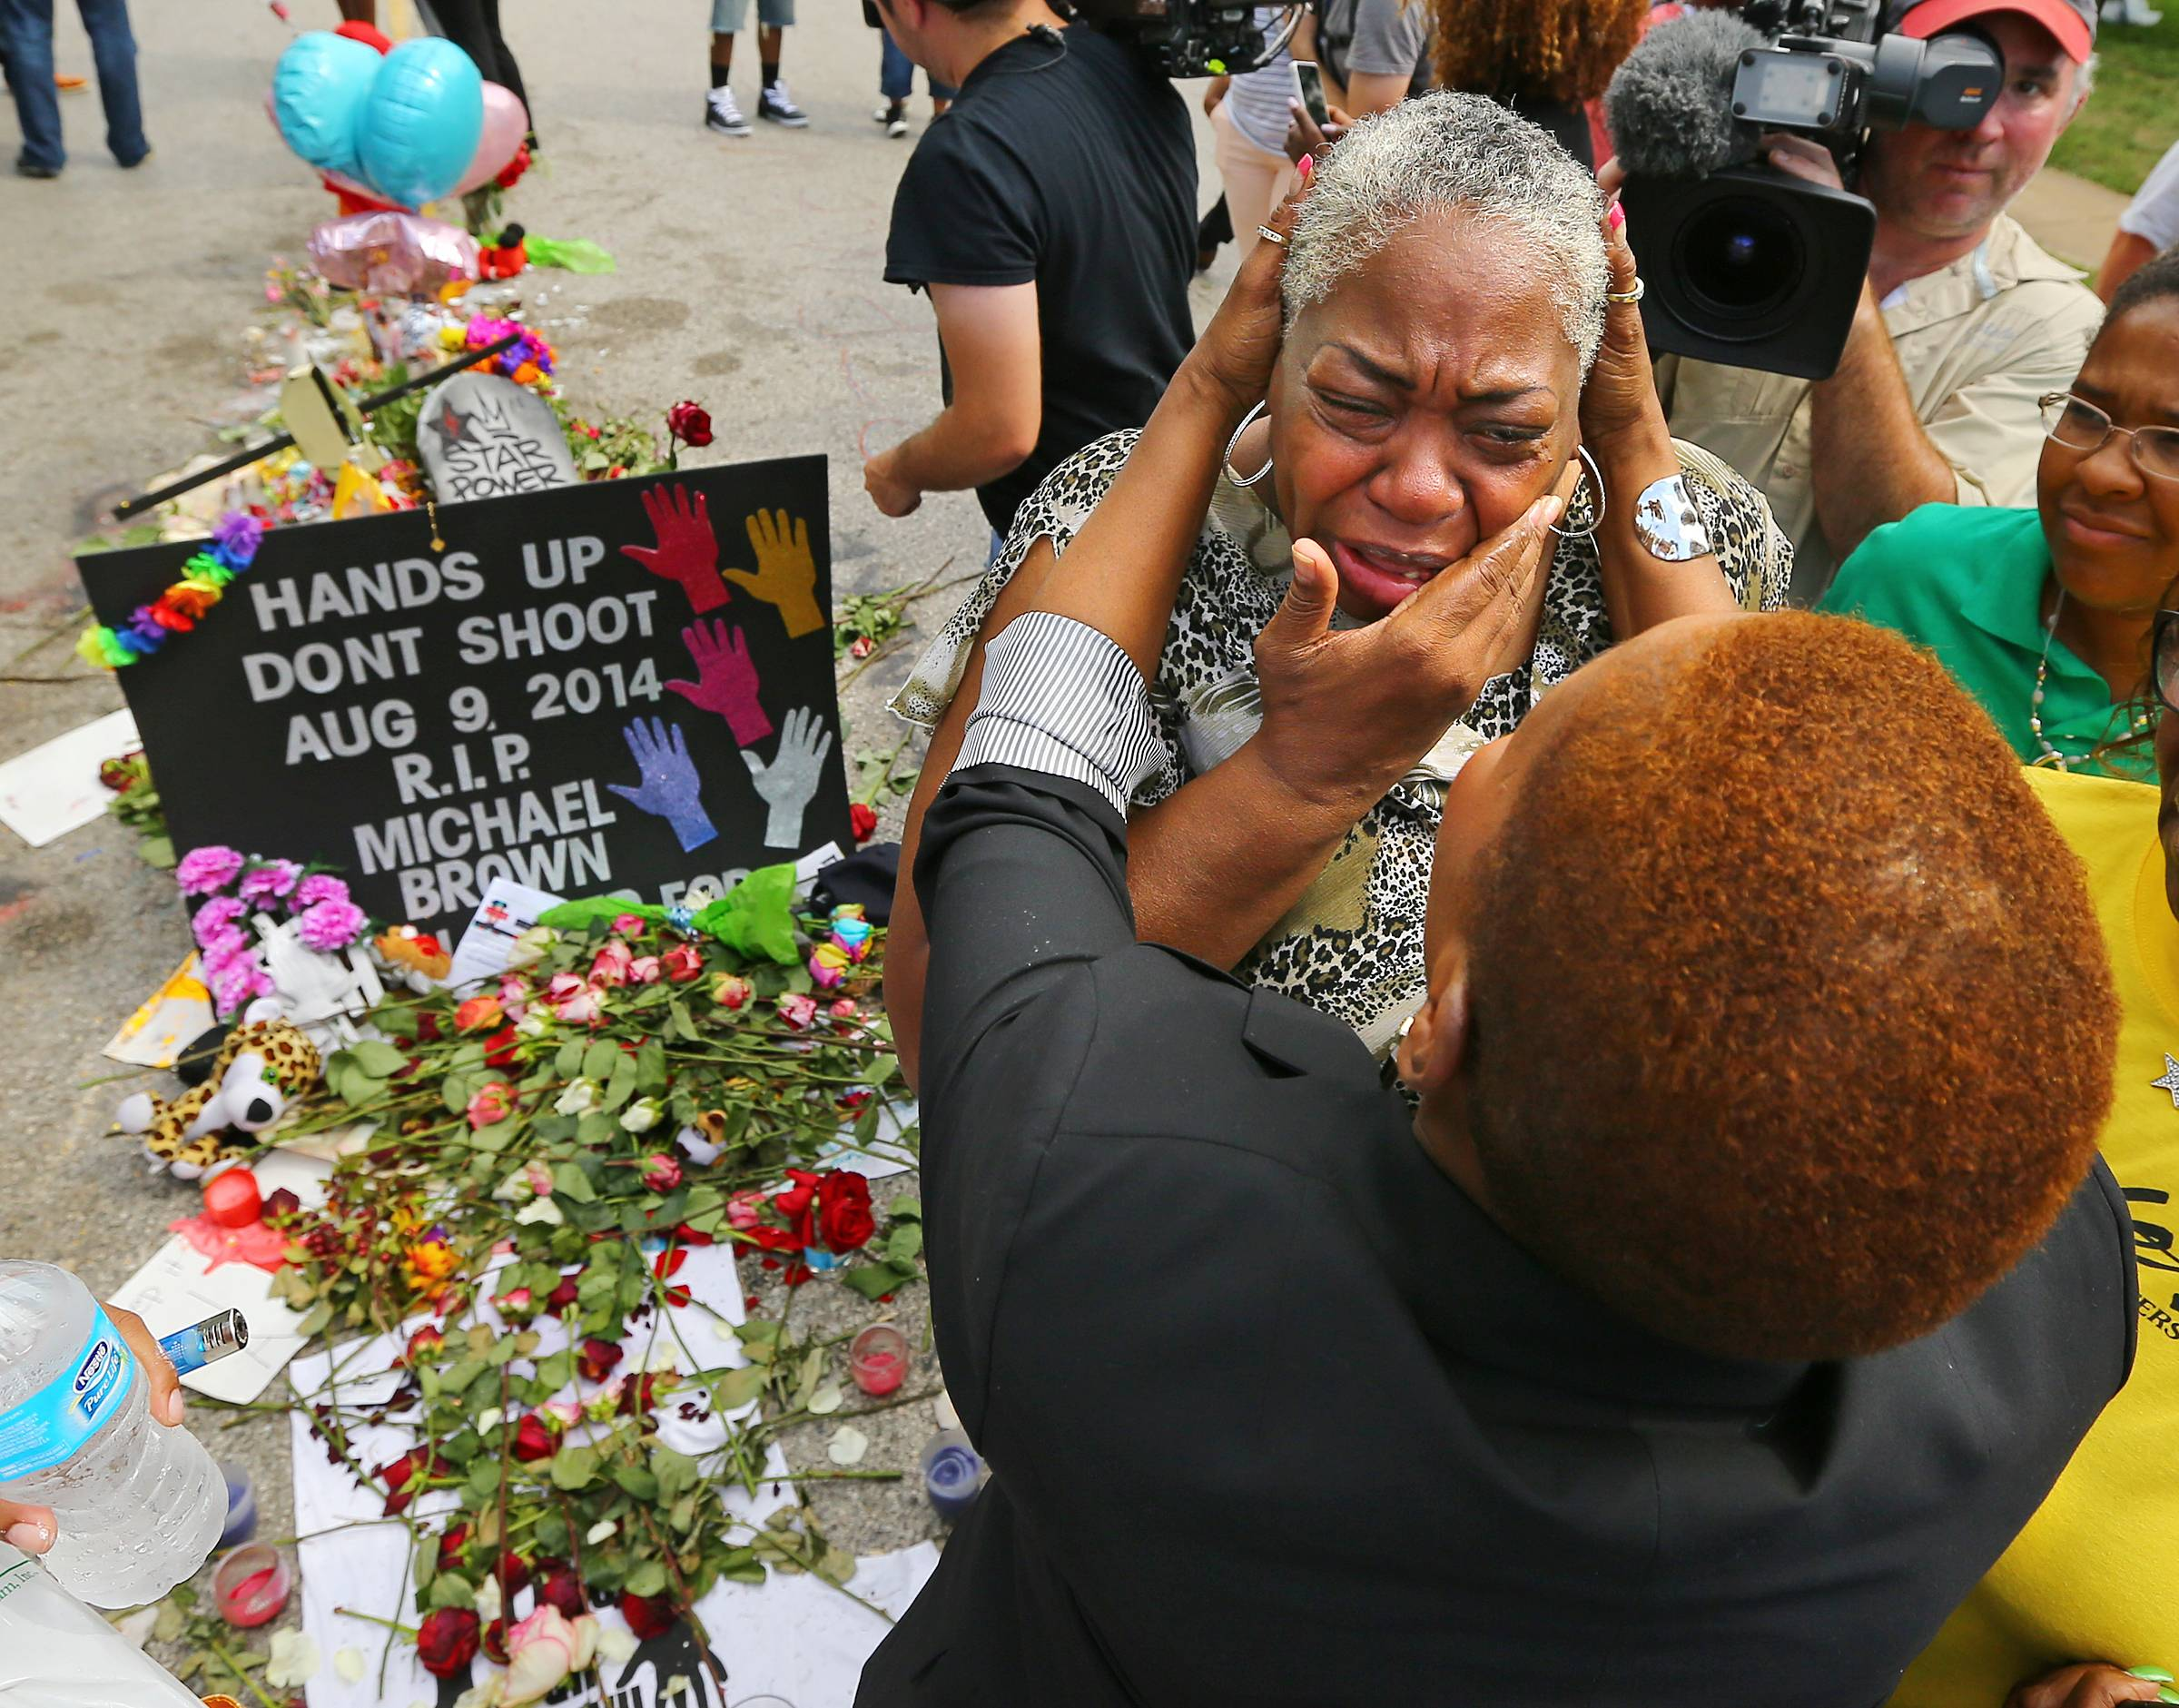 Iyanla Vanzant, right, consoles Shirley Scale, a resident at the Canfield Apartments, at the shrine to Michael Brown where he was shot and killed on Wednesday, Aug. 20, 2014, in Ferguson, Mo.